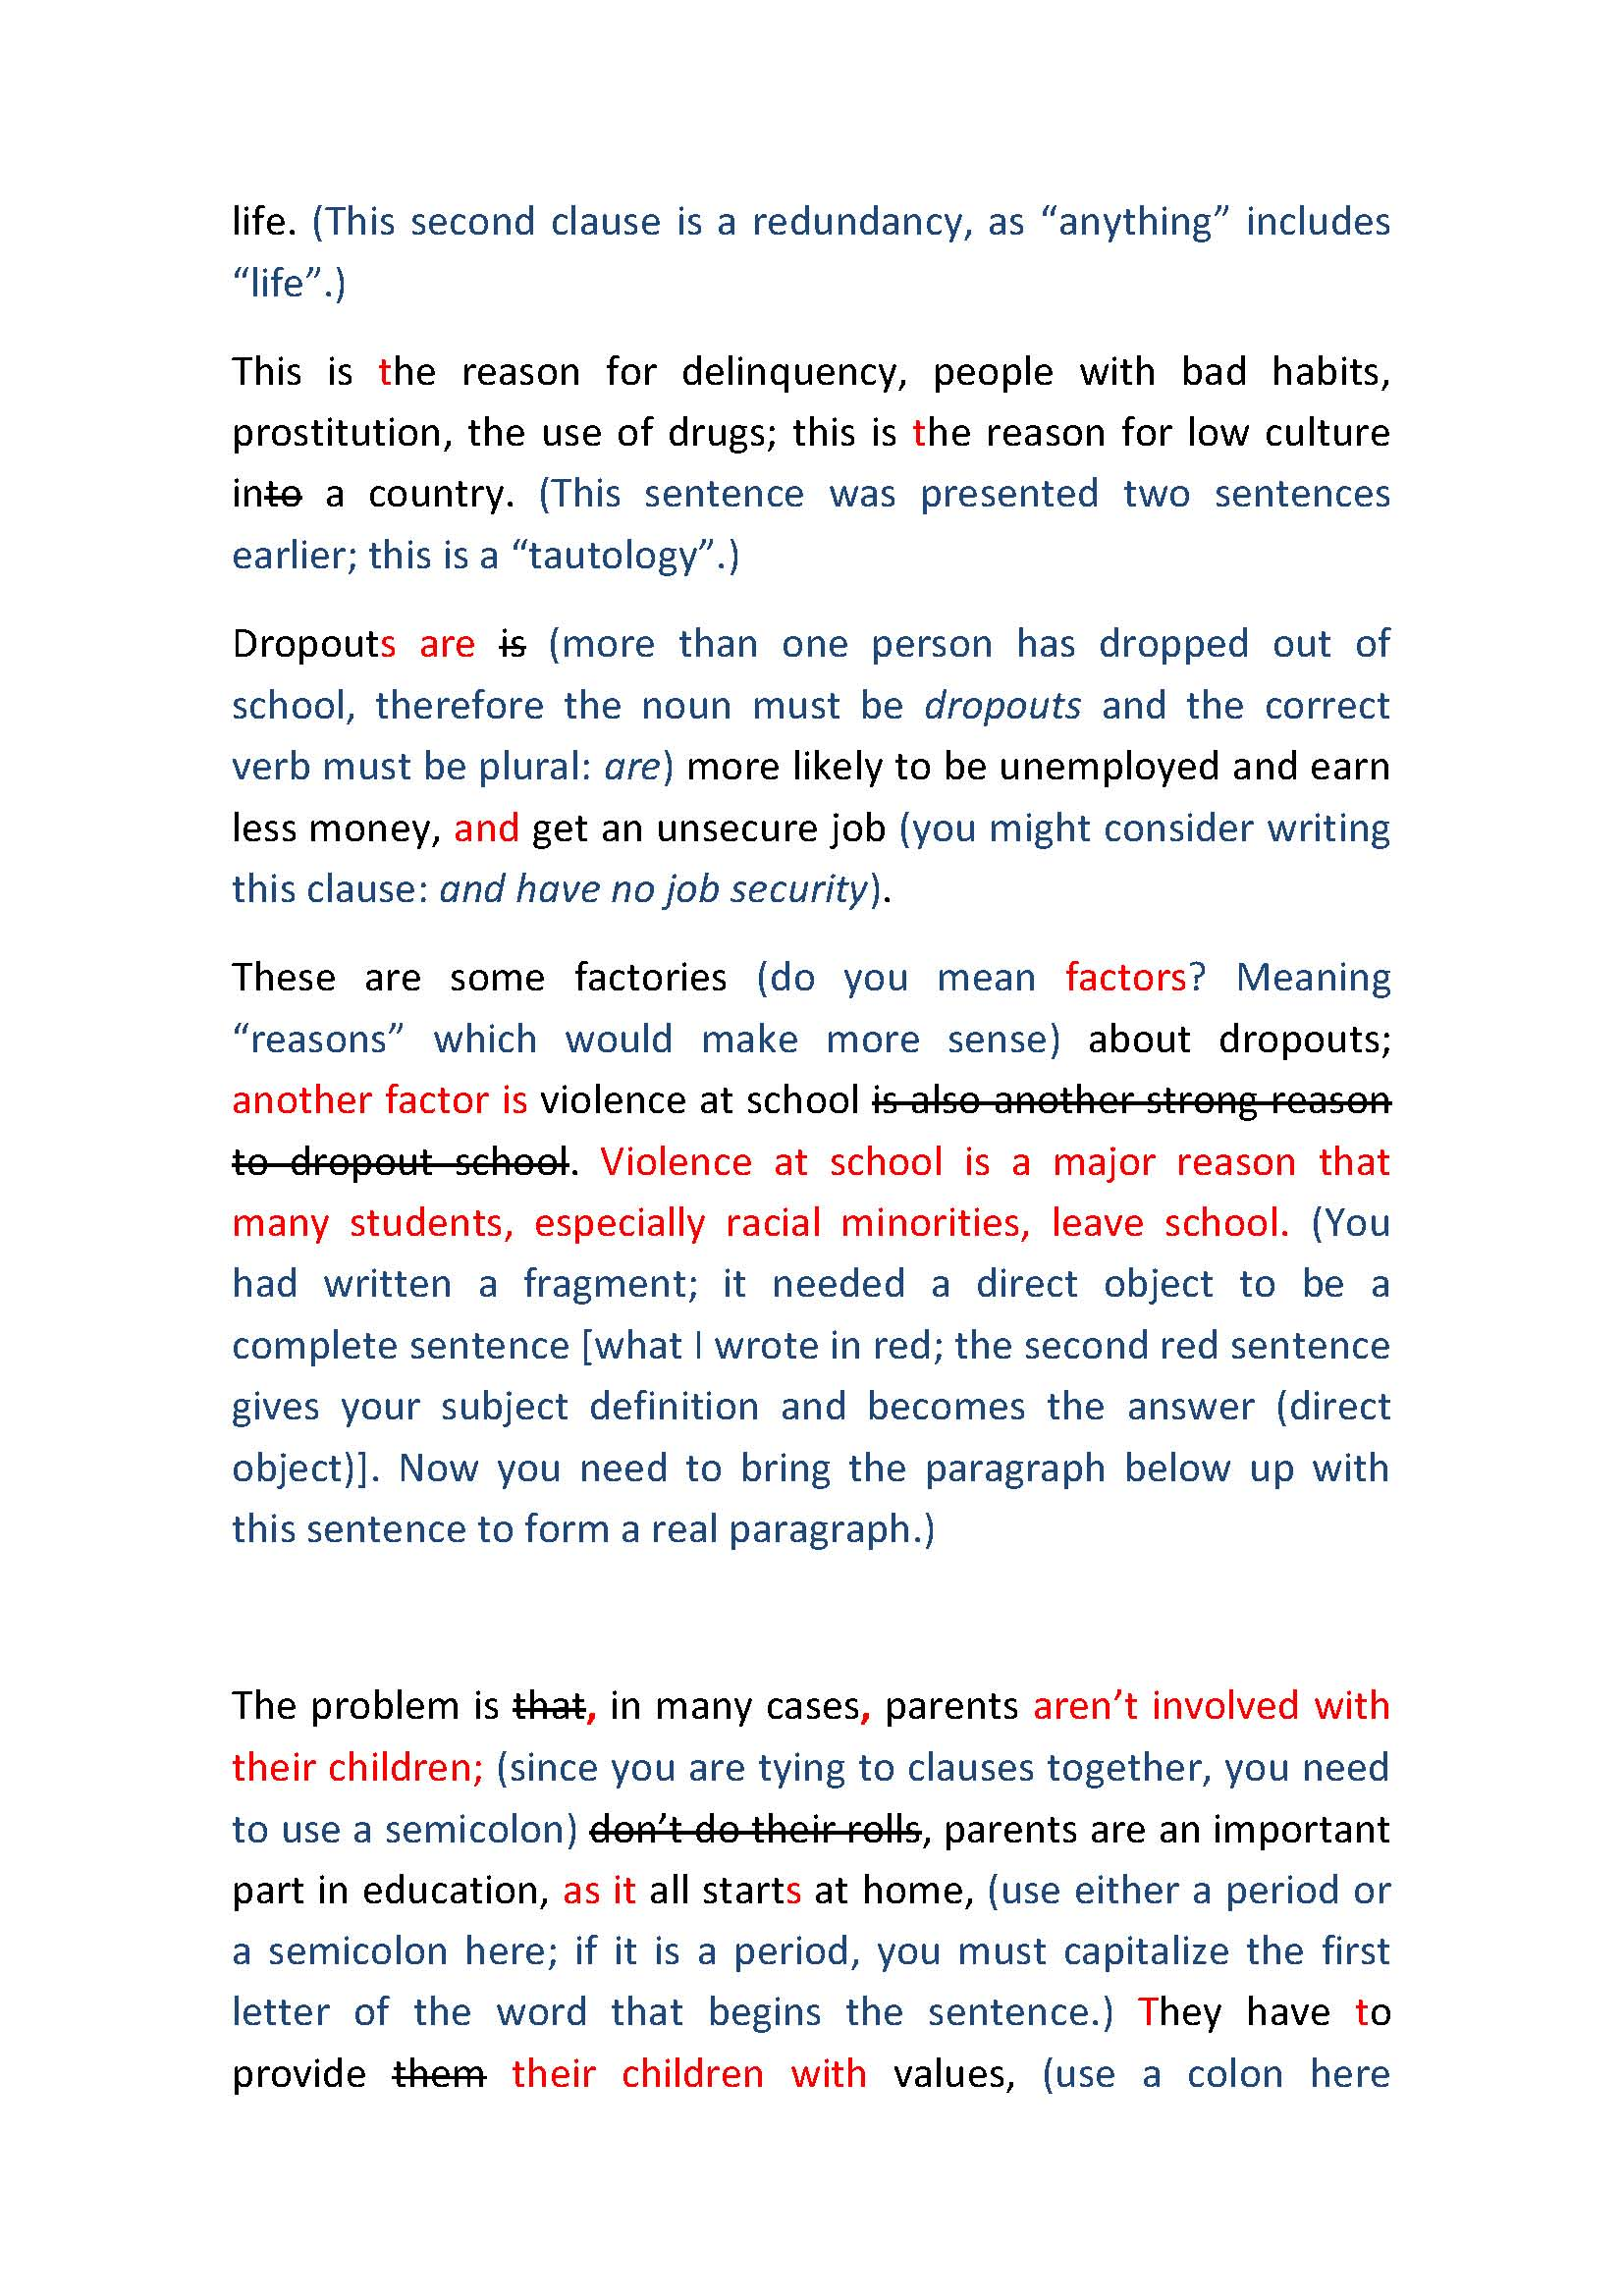 bullying essay example bullying essay thesis thesis about bullying  essay for high school life bullying essays pro life abortion arguments essays cyber bullying fame productions